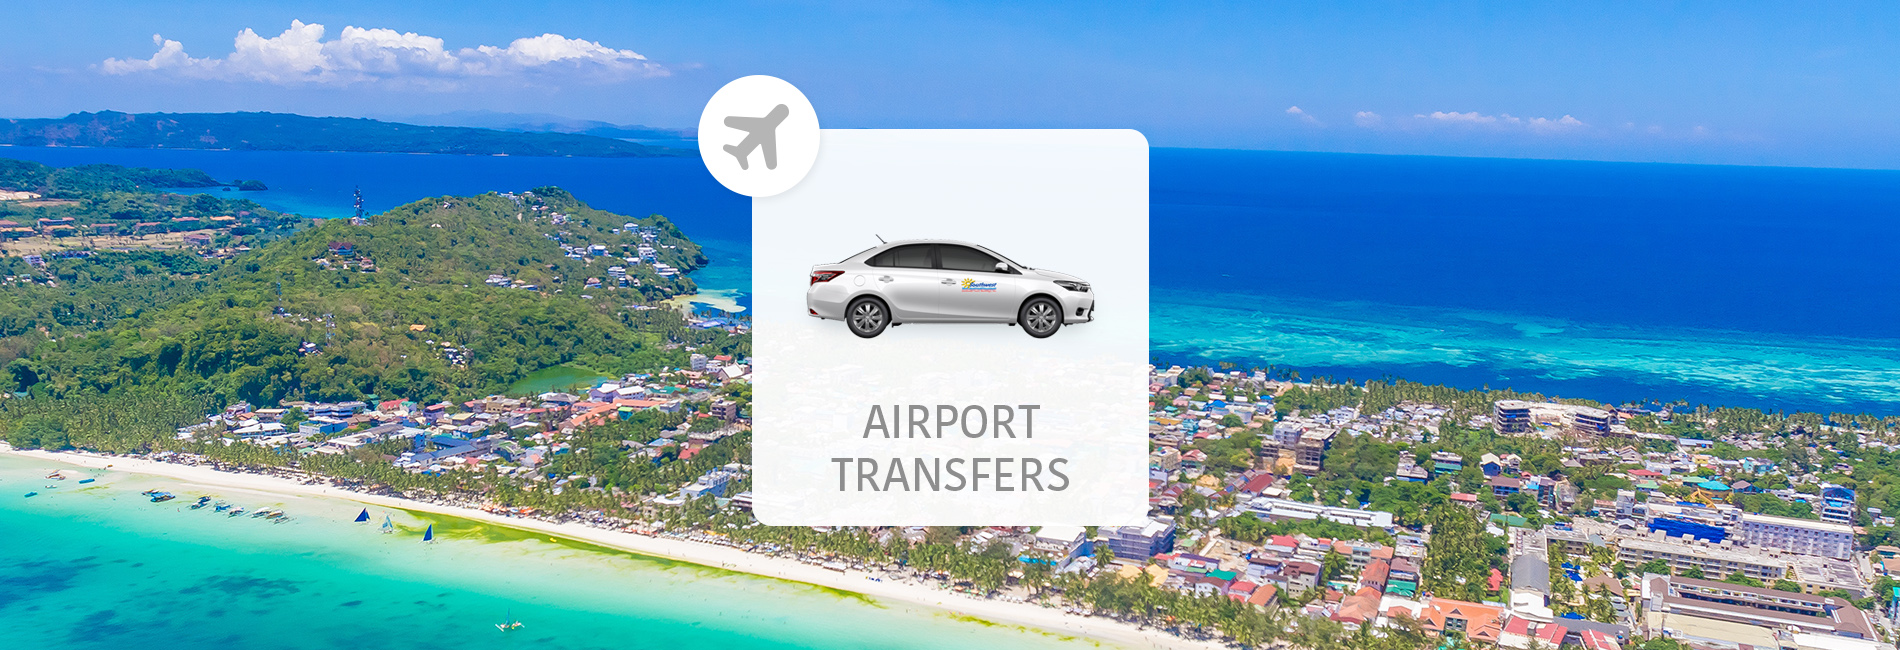 Caticlan Airport (MPH) Shared Transfer to Boracay